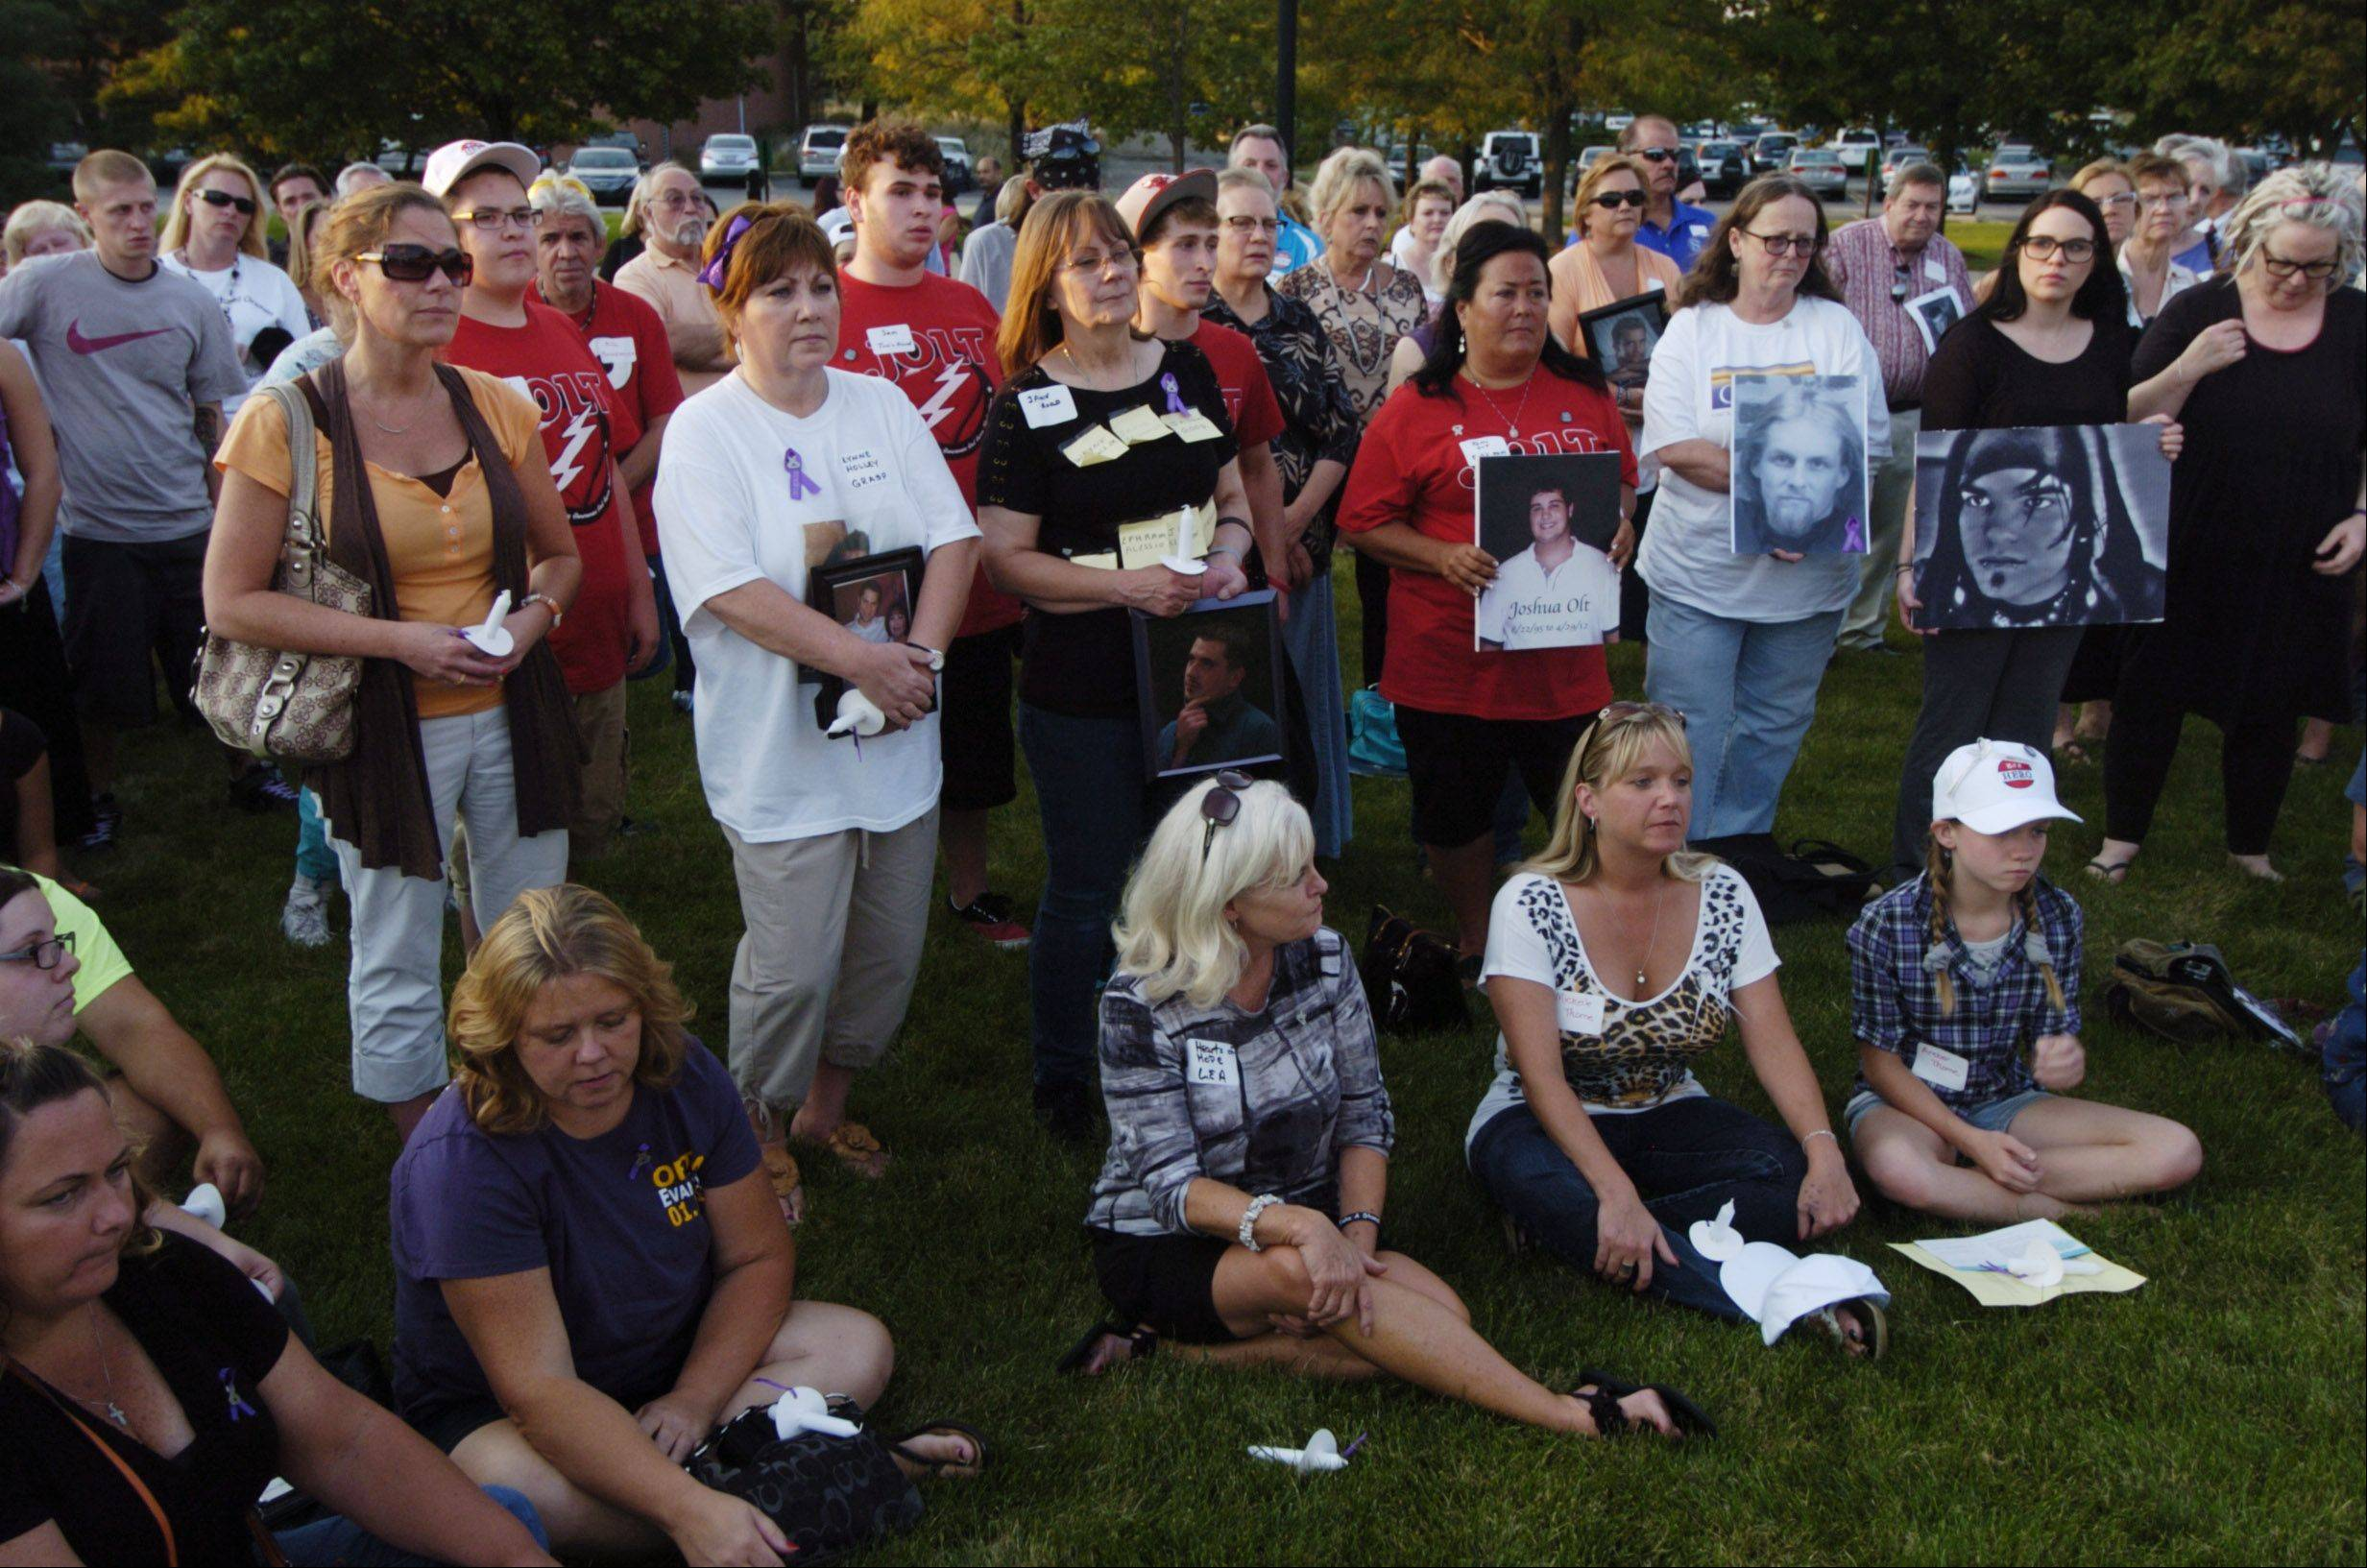 JOE LEWNARD/jlewnard@dailyherald.comFriends and family members of overdose victims gather during a candlelight vigil and remembrance ceremony Thursday at Roosevelt University in Schaumburg.